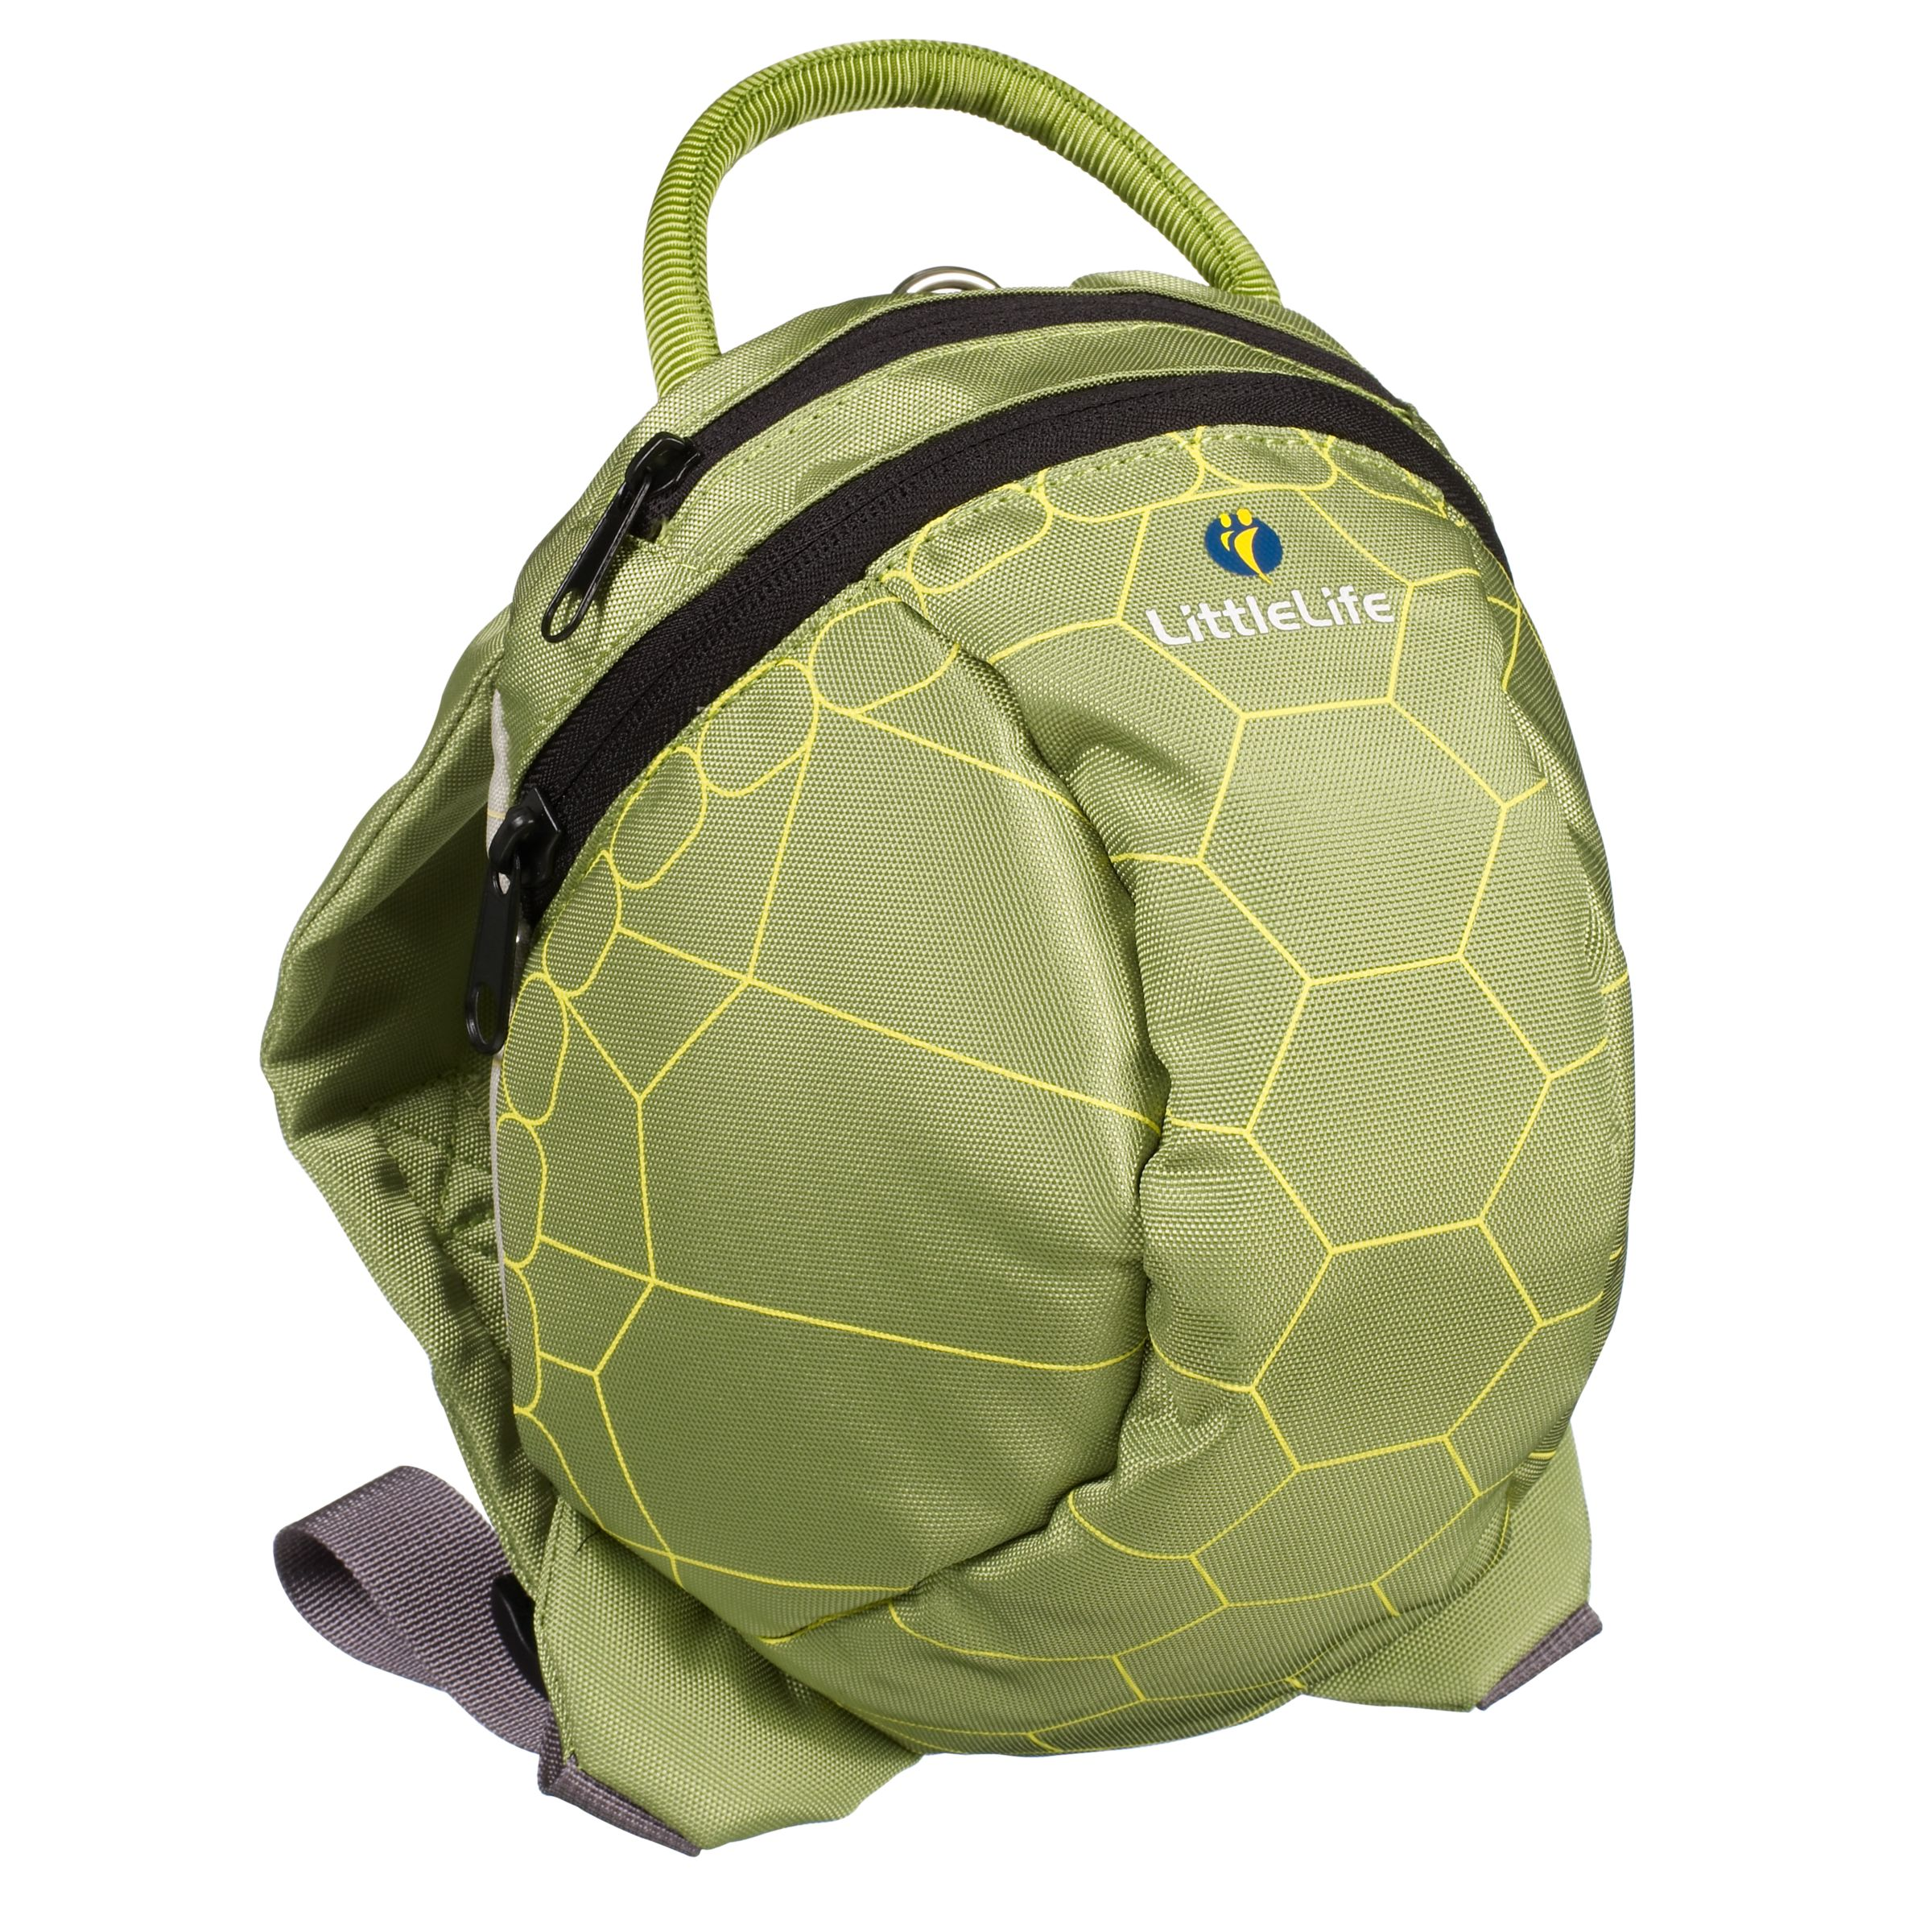 Toddler Daysack, Turtle